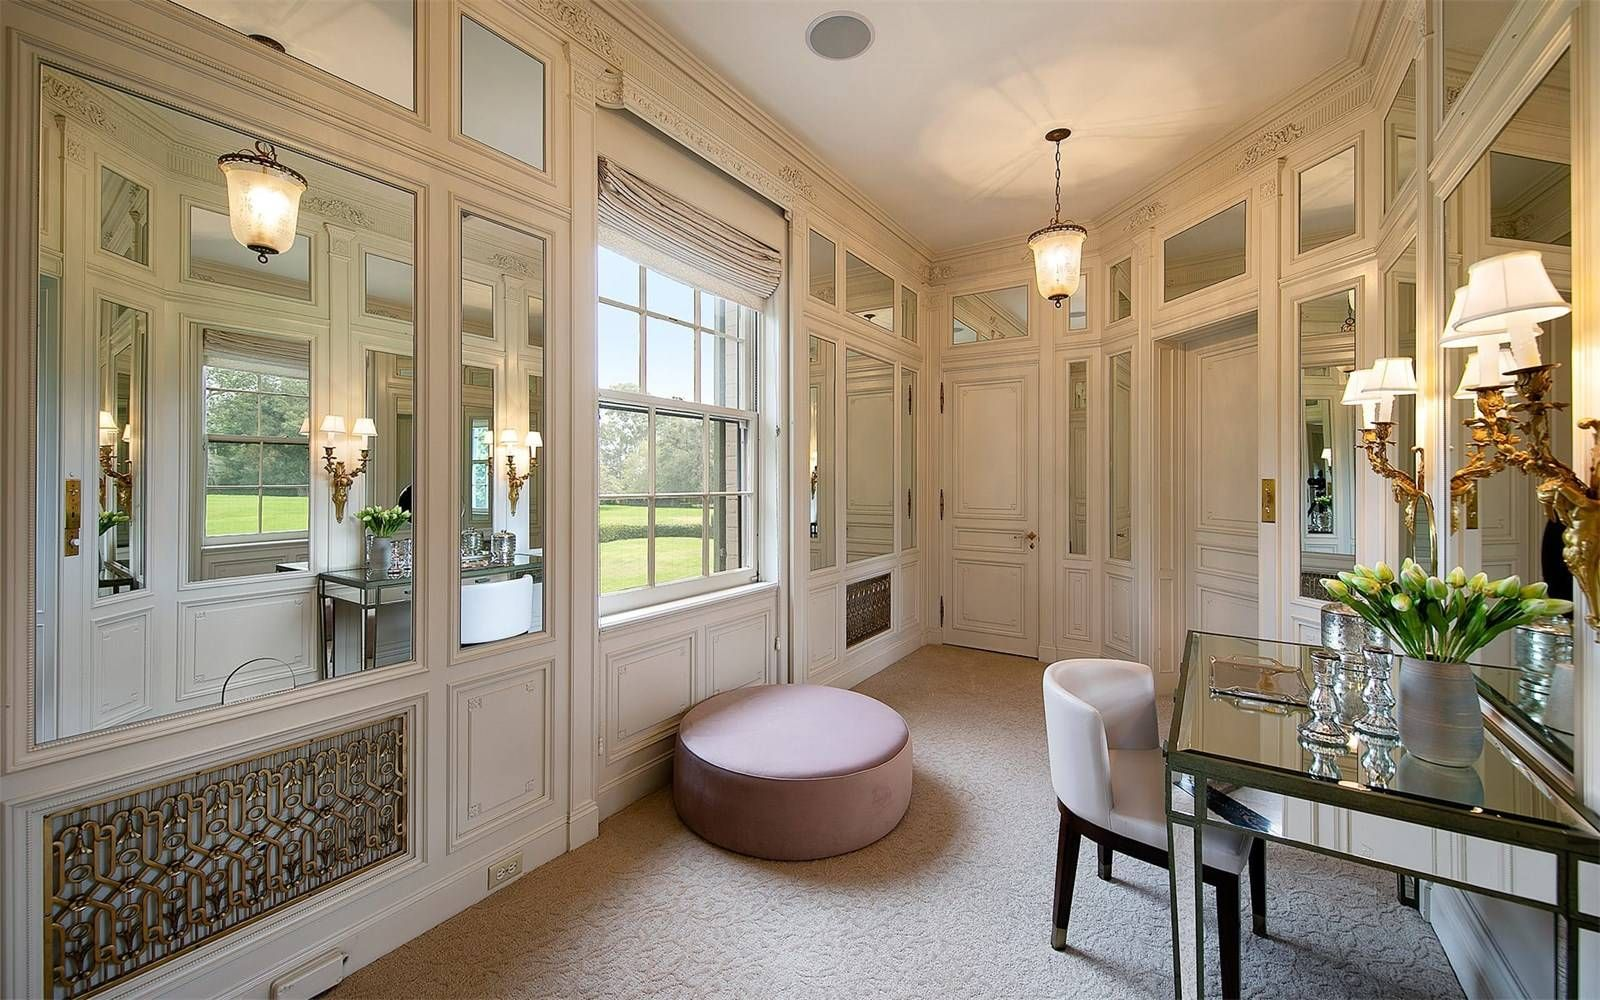 141 S Carolwood Dr: a luxury home for sale in Los Angeles ...